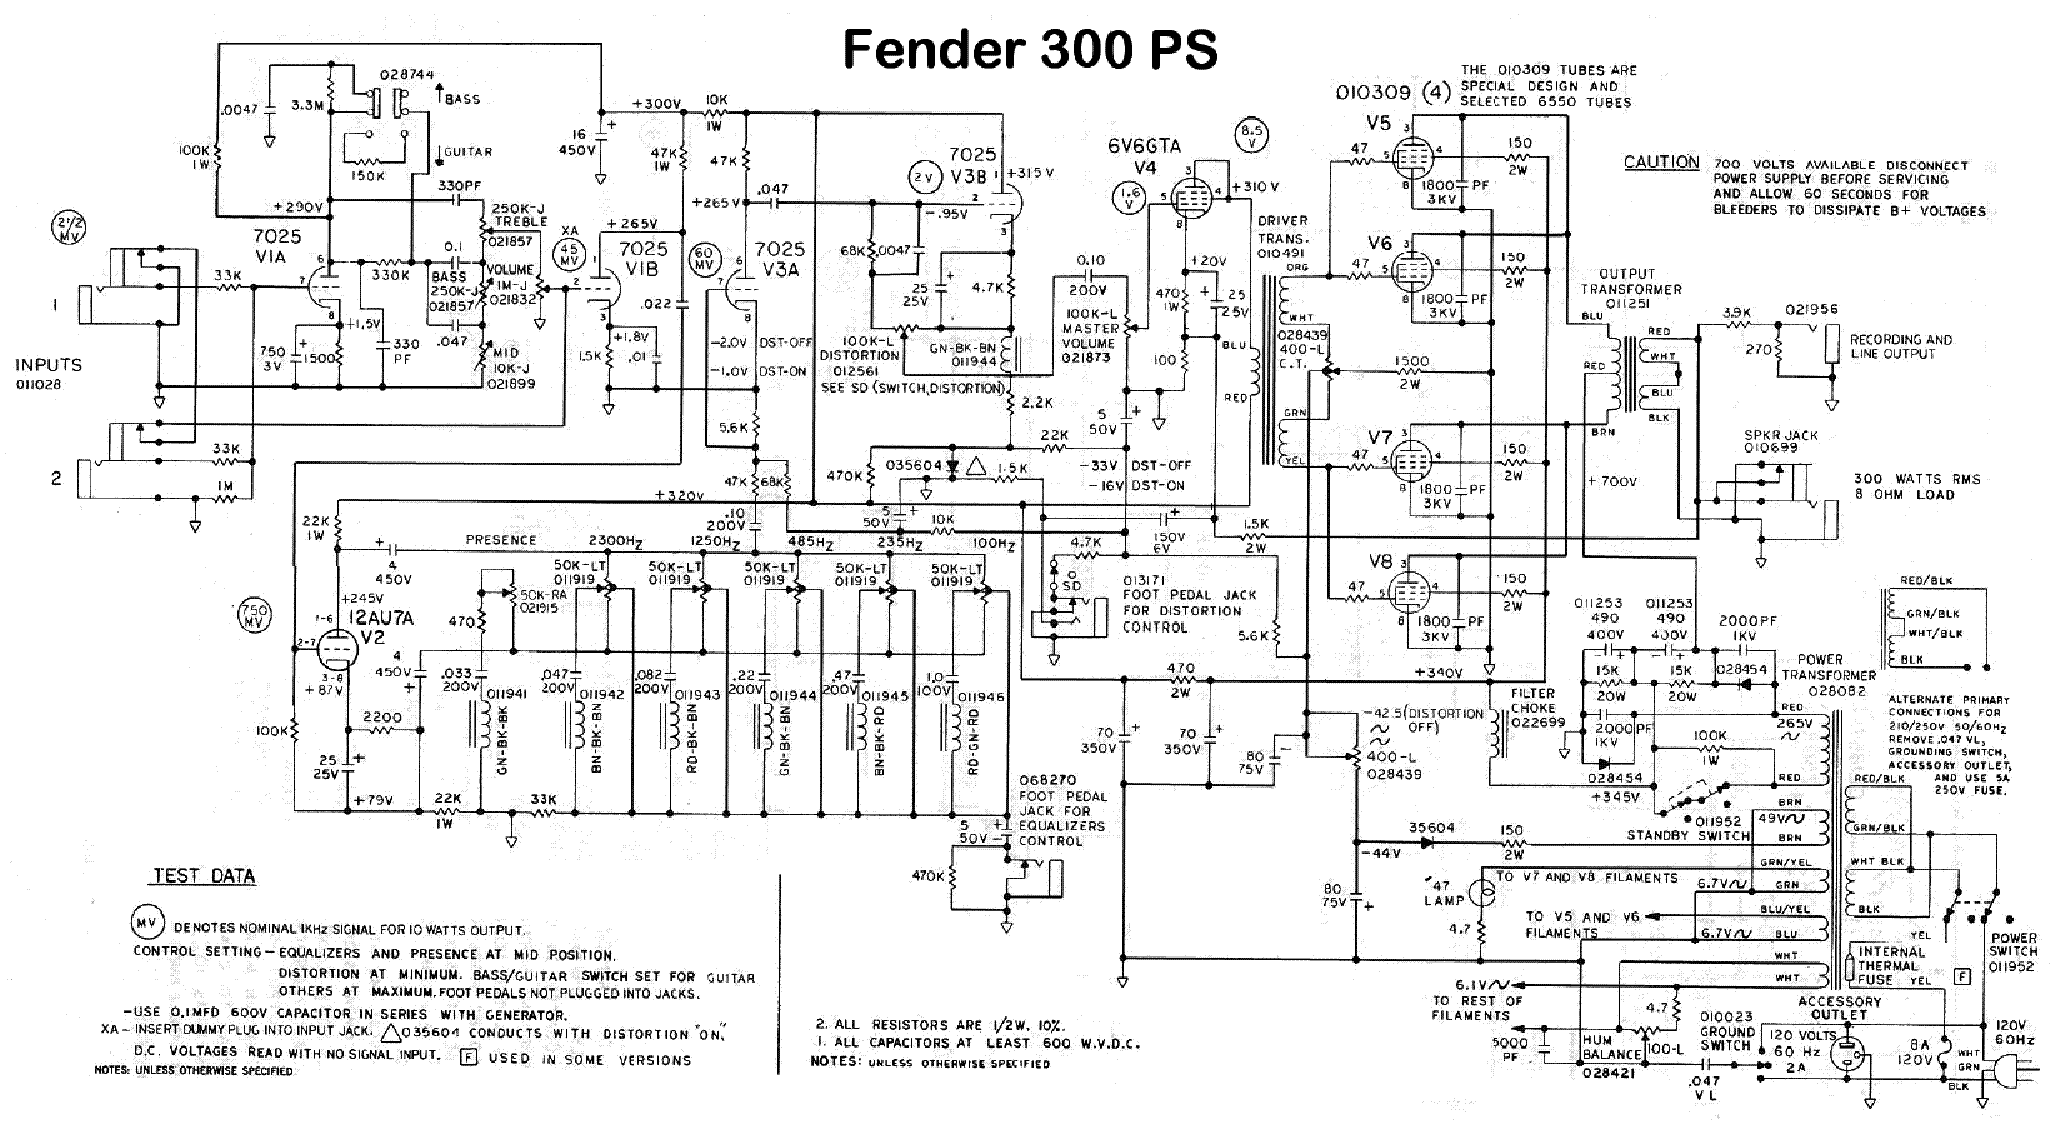 Fender Ps300 Service Manual Download Schematics Eeprom